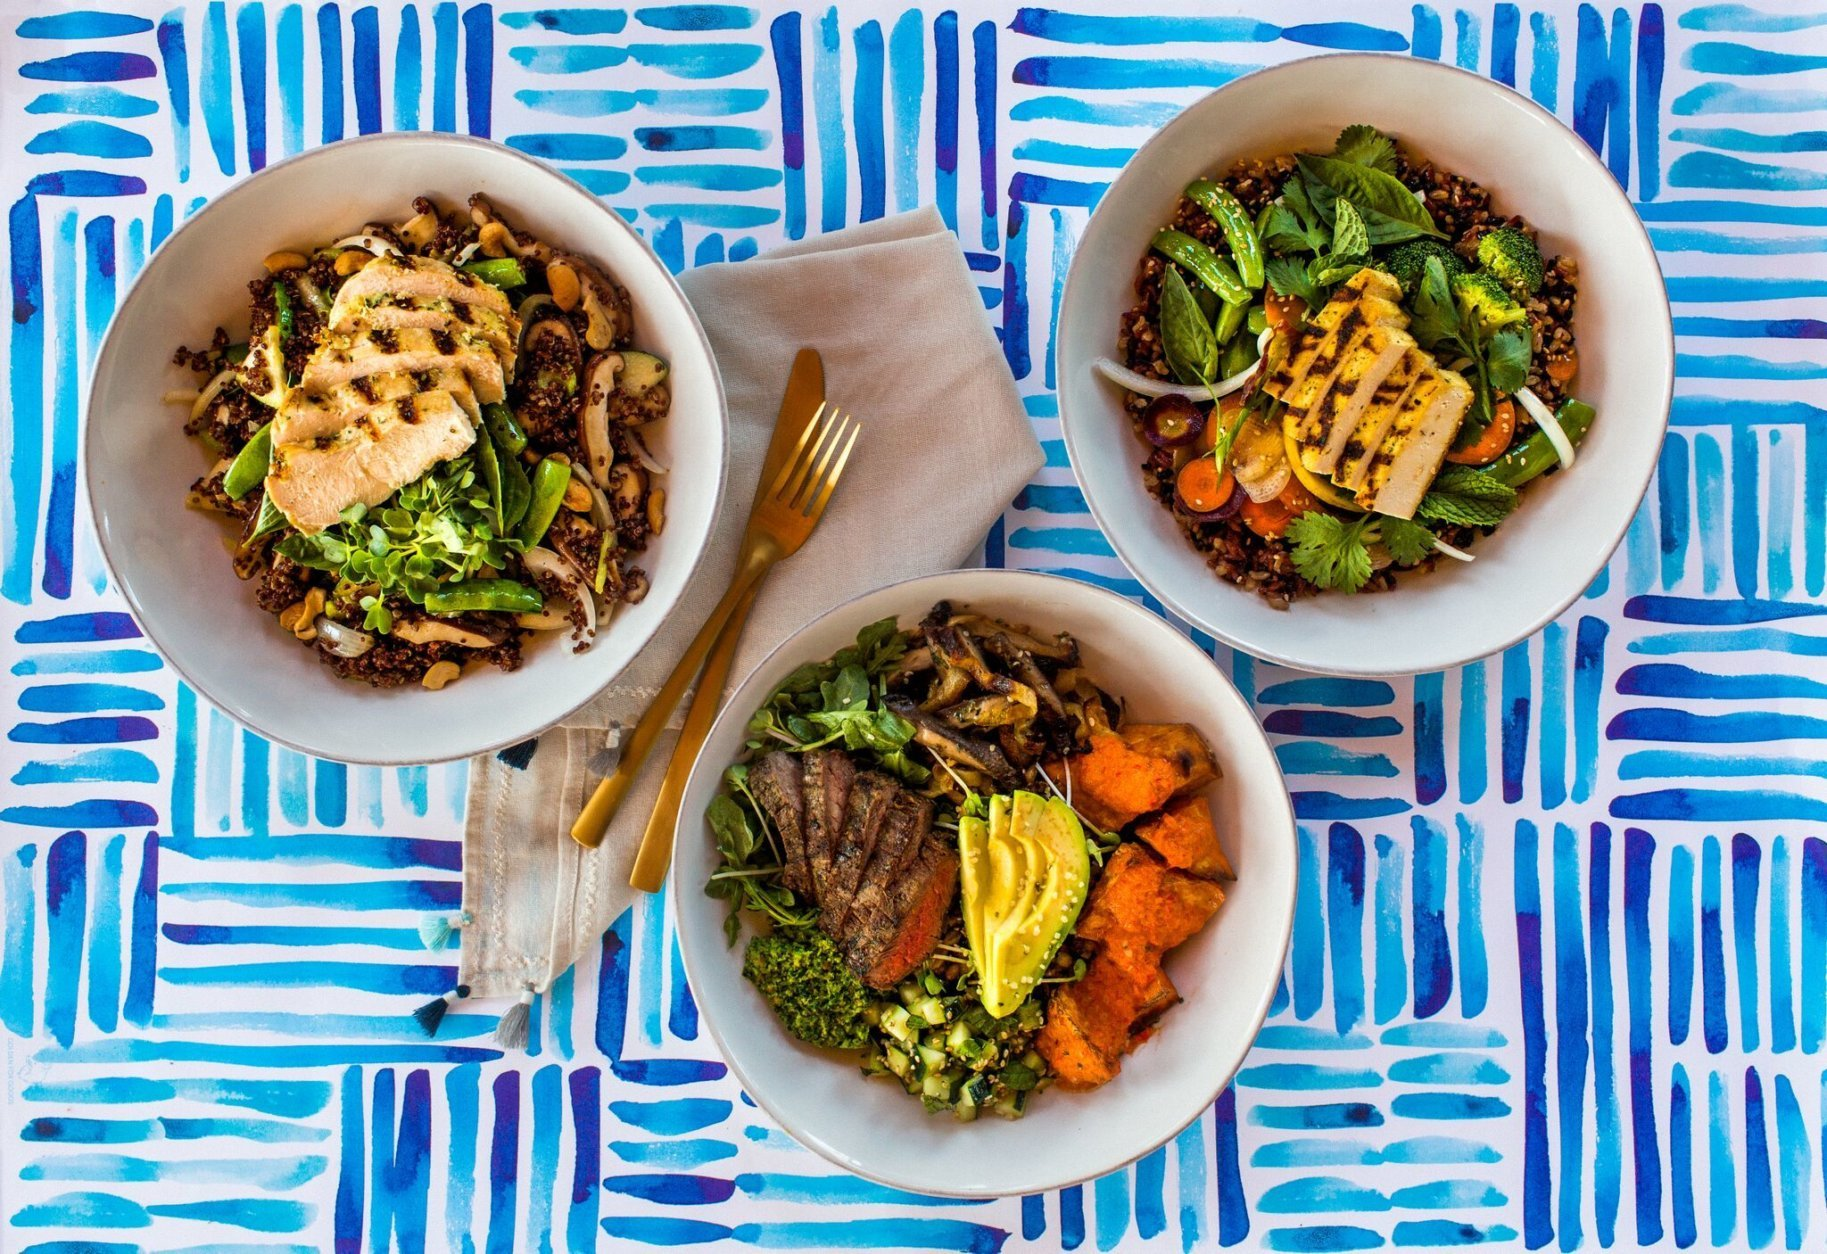 Flower Child will serve organic, gluten-free, vegetarian and vegan dishes for lunch and dinner, including bowls, salads, wraps and mix-and-match plates. (Photo courtesy of Fox Restaurant Concepts)